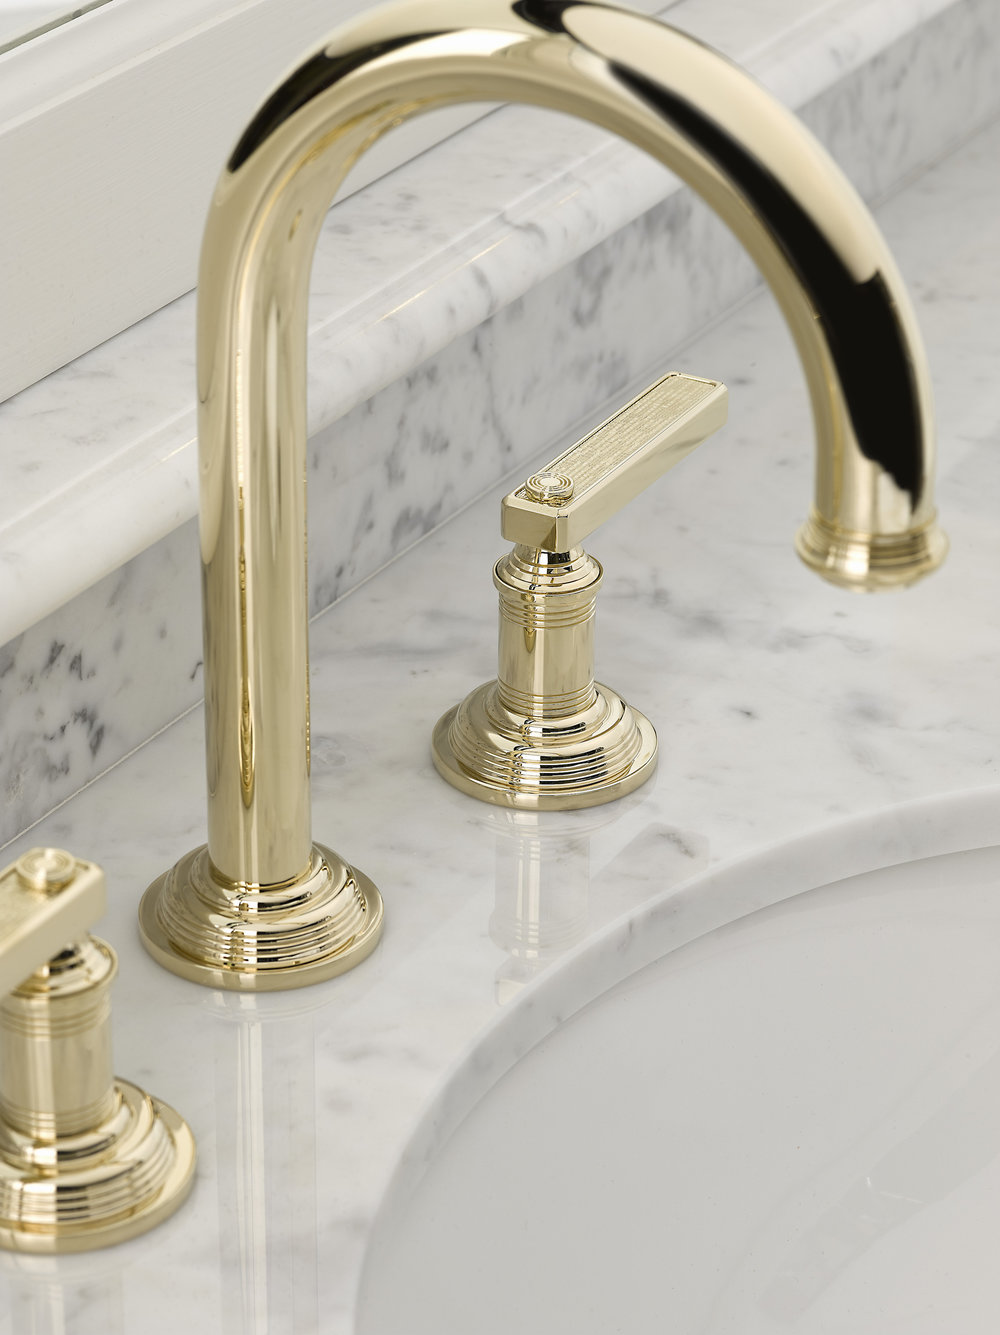 brass-faucet-minneapolis.jpg